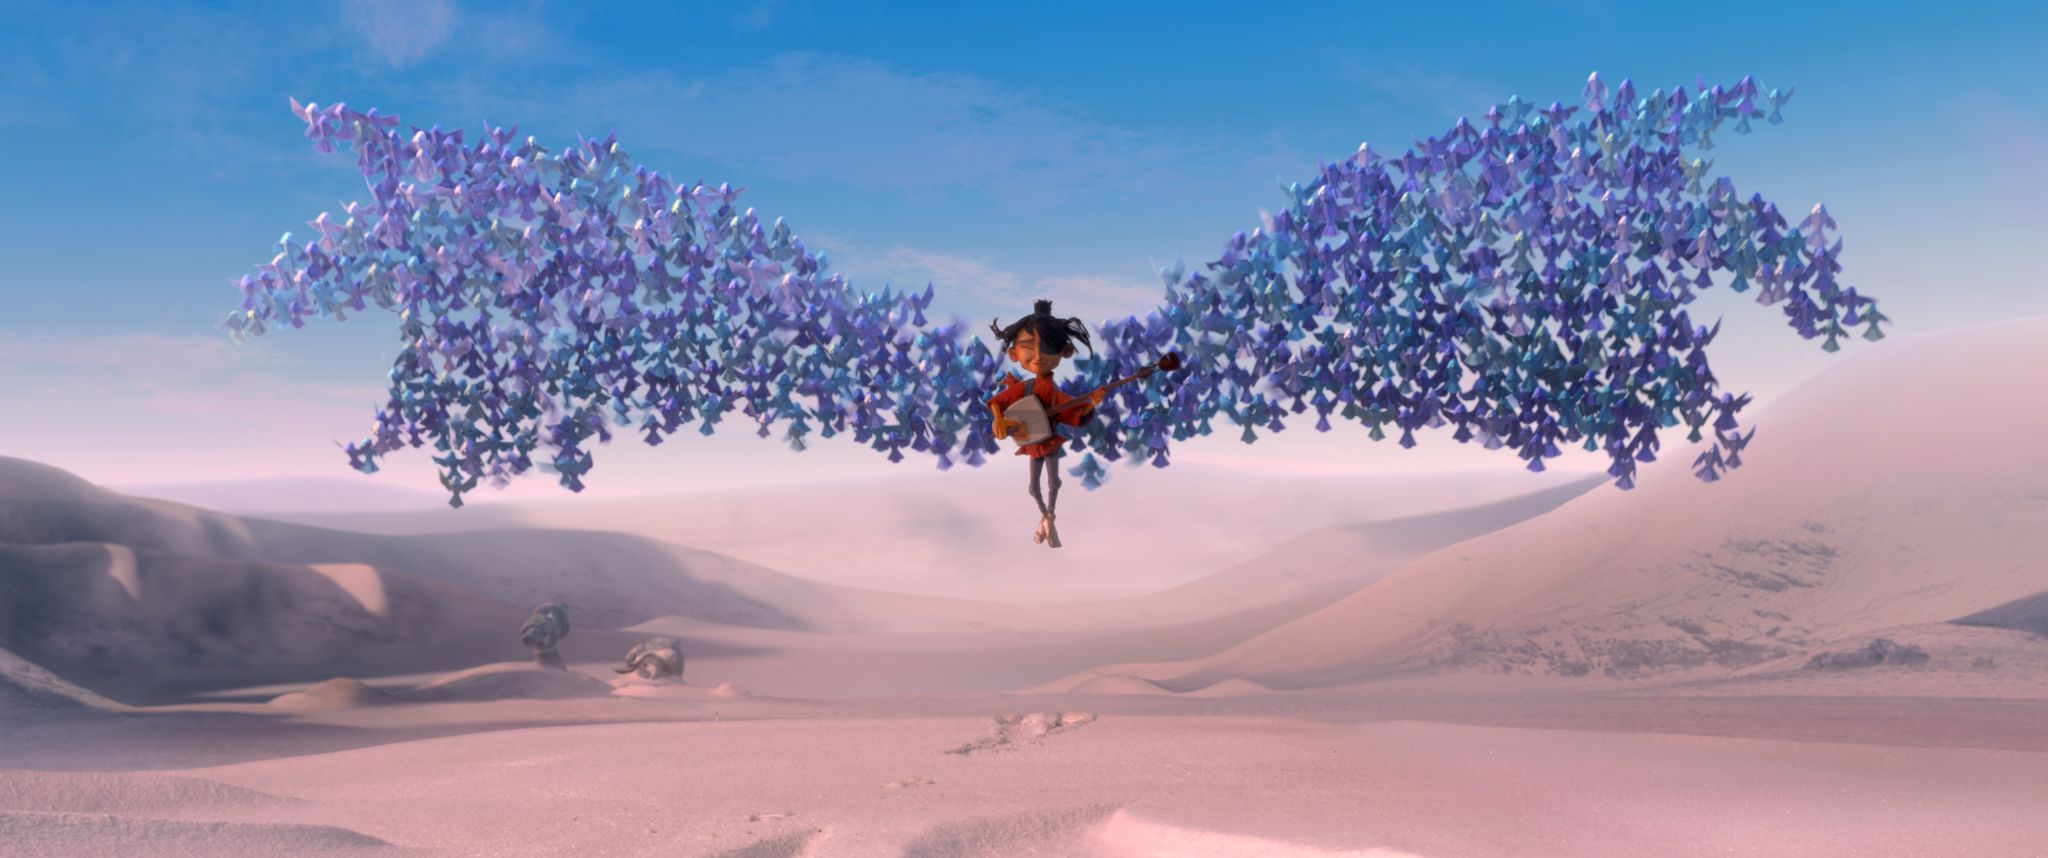 Most Viewed Kubo And The Two Strings Wallpapers 4k Wallpapers